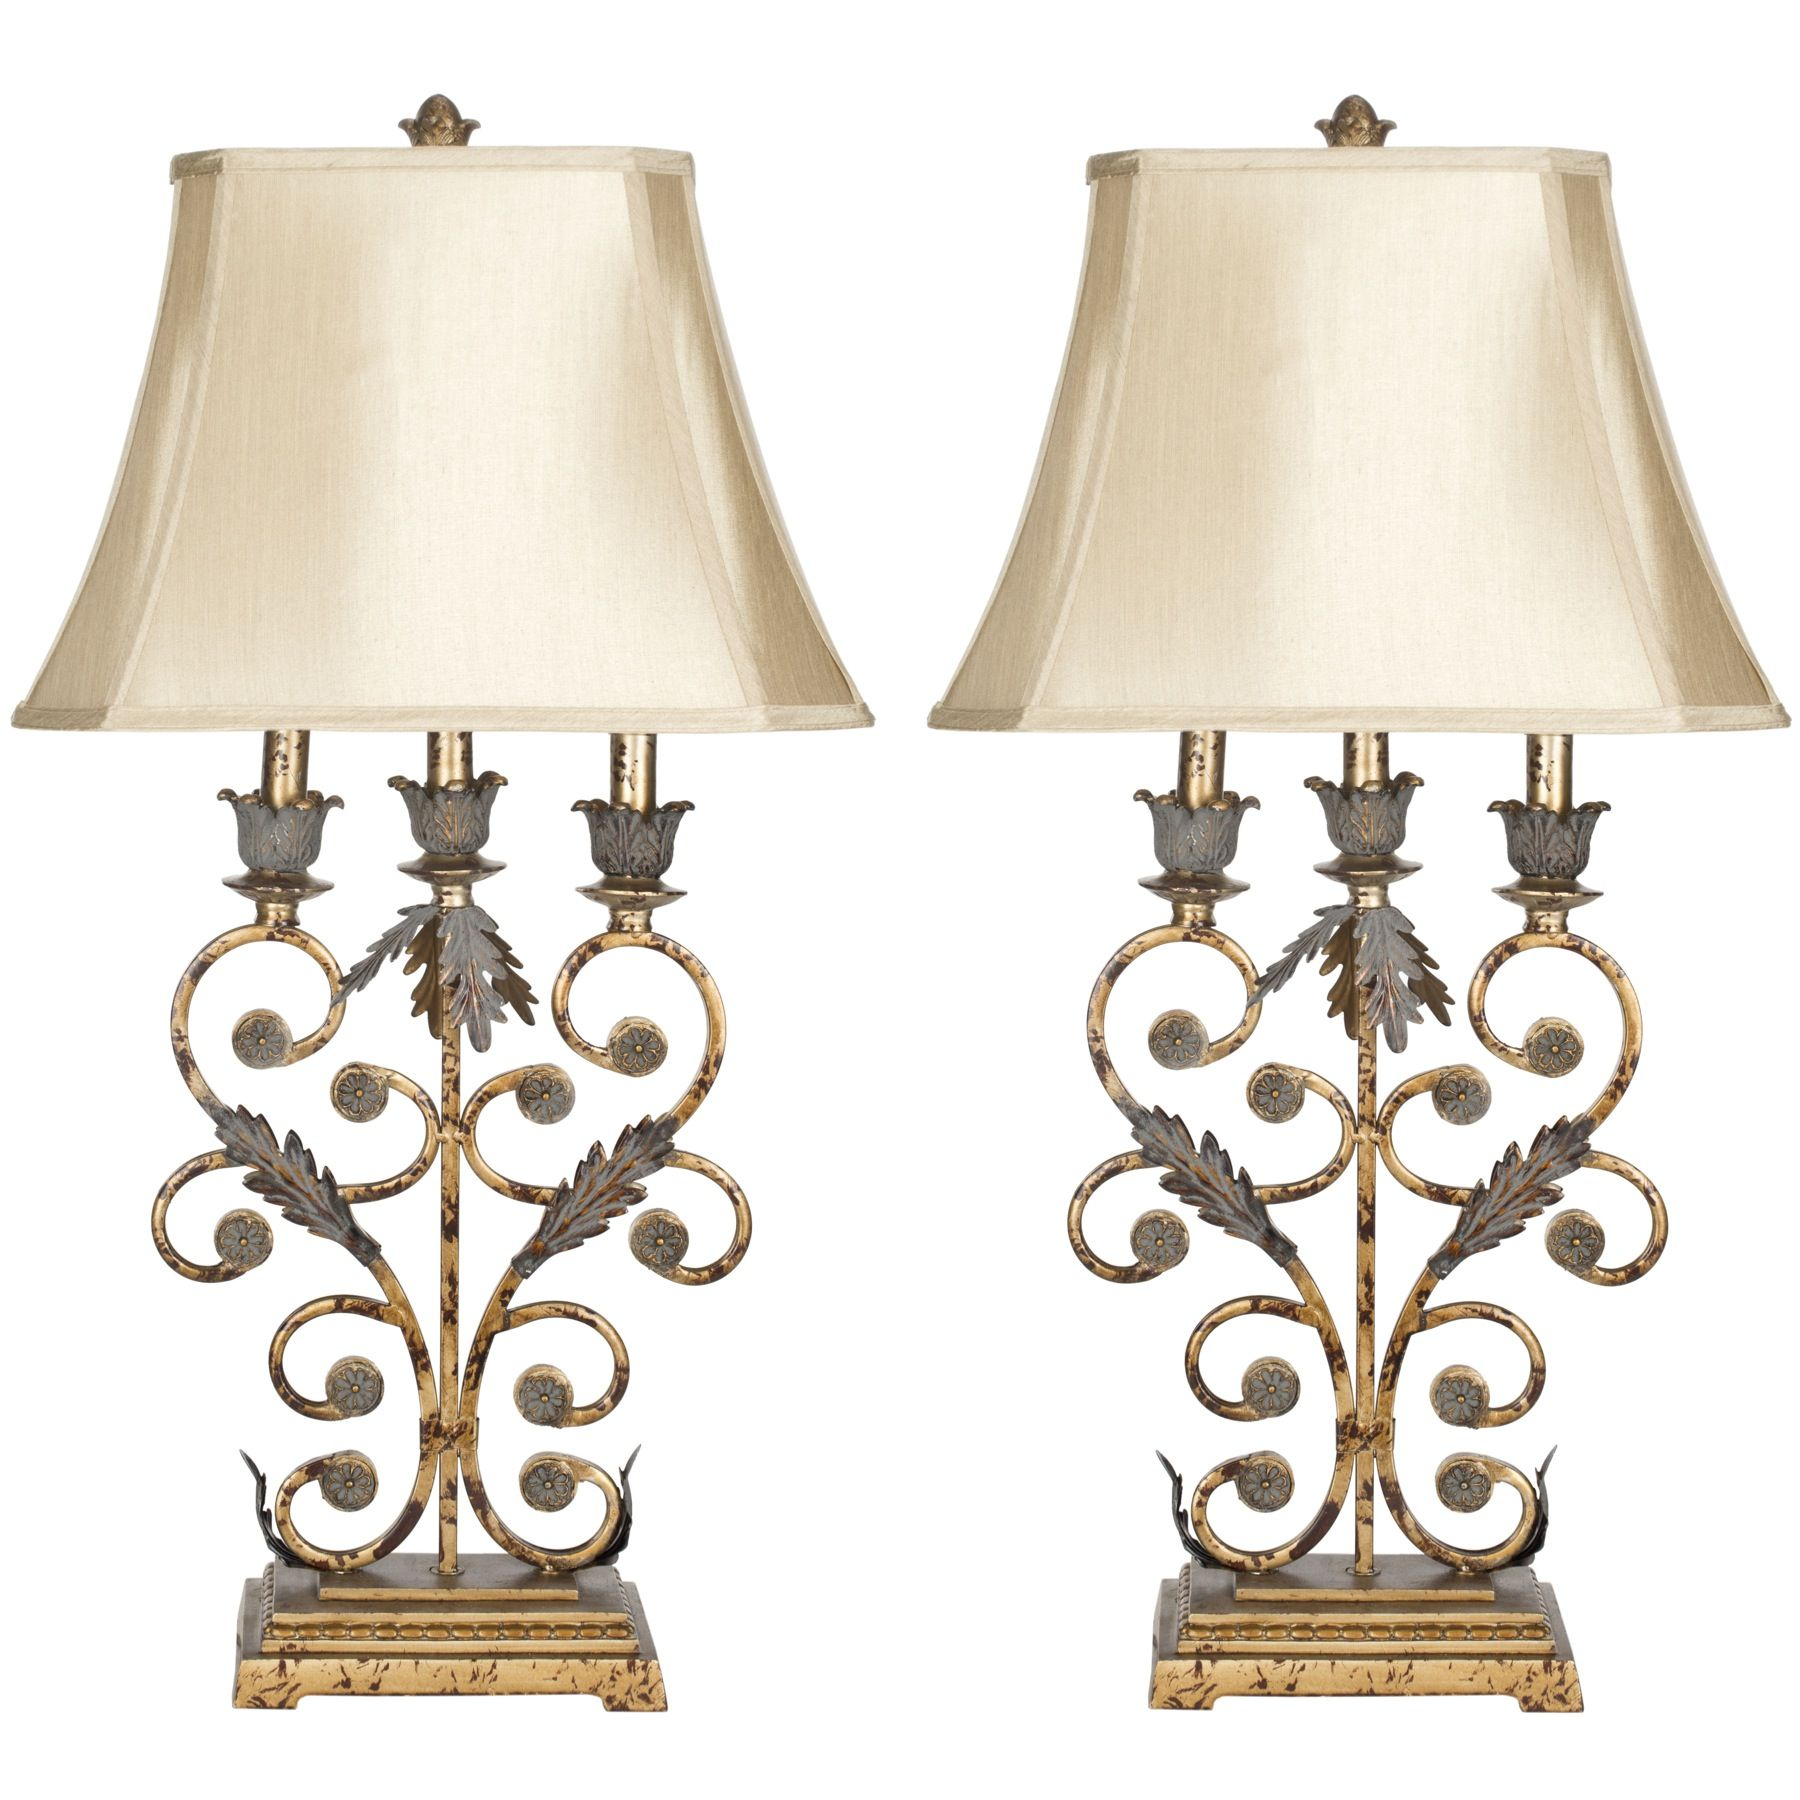 Safavieh Gold Wrought Iron Table Lamps With Beige Shades Green